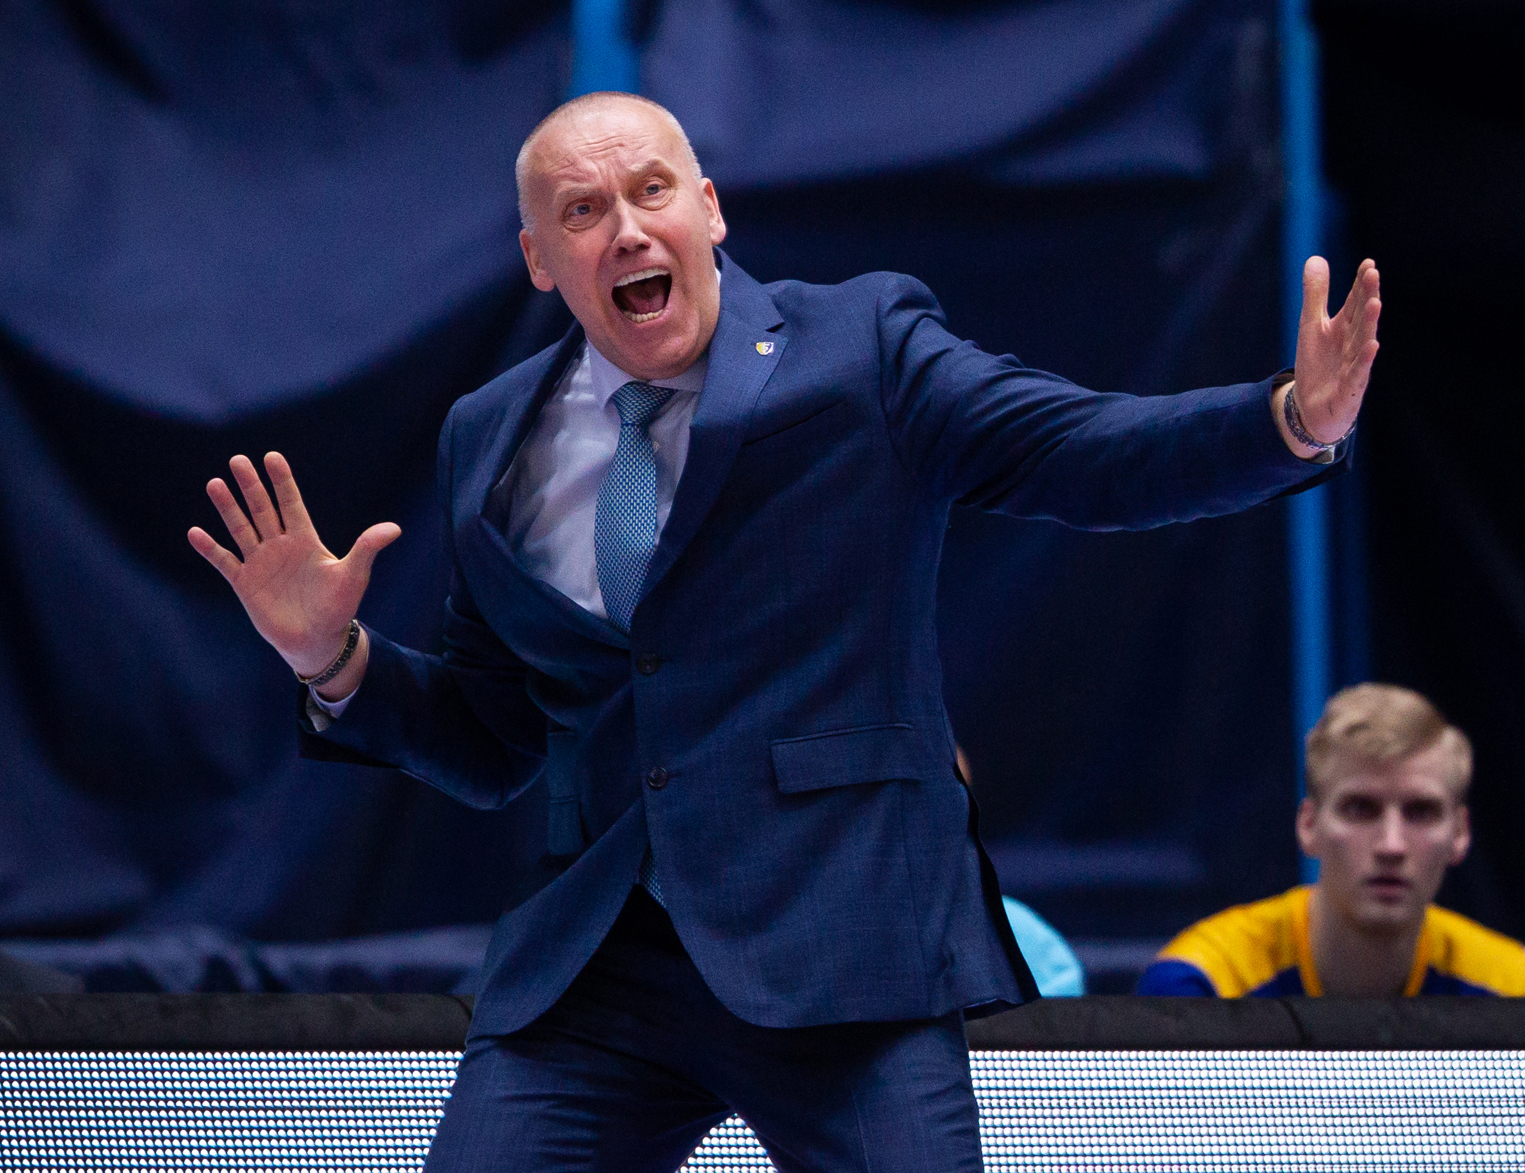 January In Review: CSKA's 1st Loss, Kurtinaitis And Pashutin Return, Playoff Race Heats Up